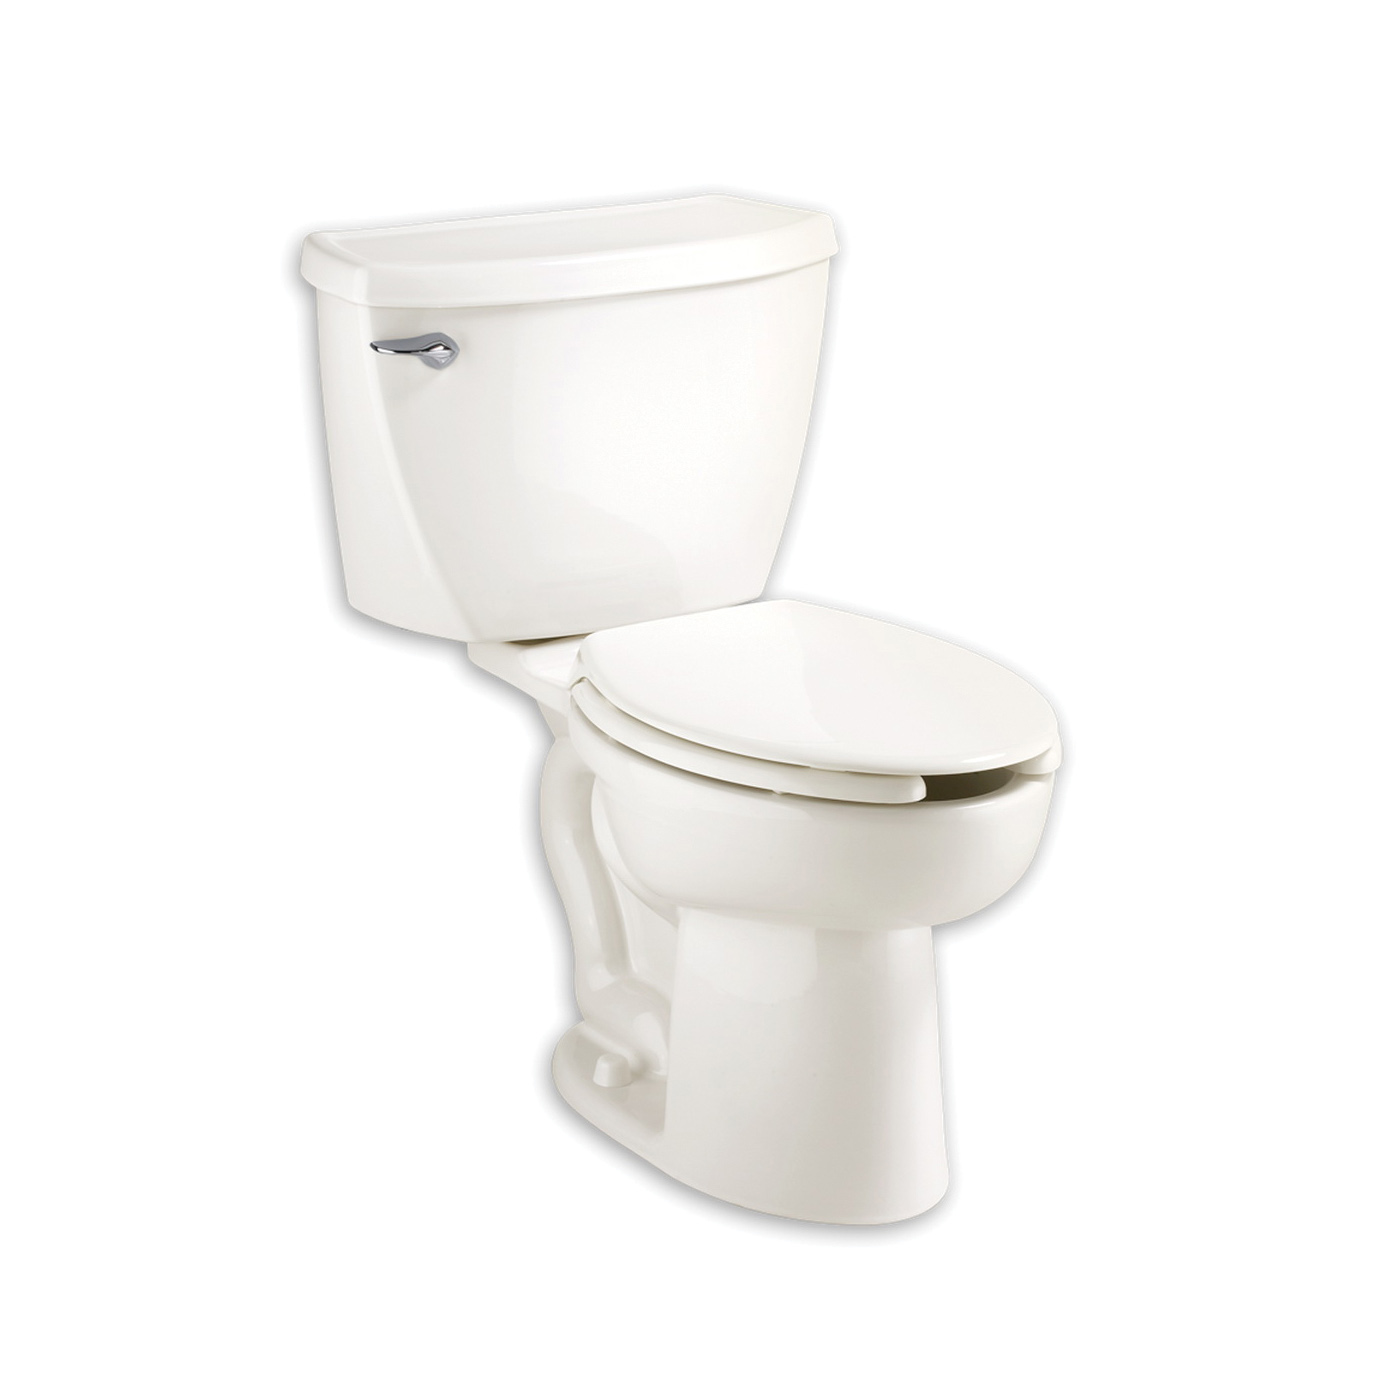 American Standard 2467.100.020 Cadet® Flowise® Right Height™ 2-Piece Toilet, Elongated Bowl, 16-1/2 in H Rim, 1.1 gpf, White, Domestic